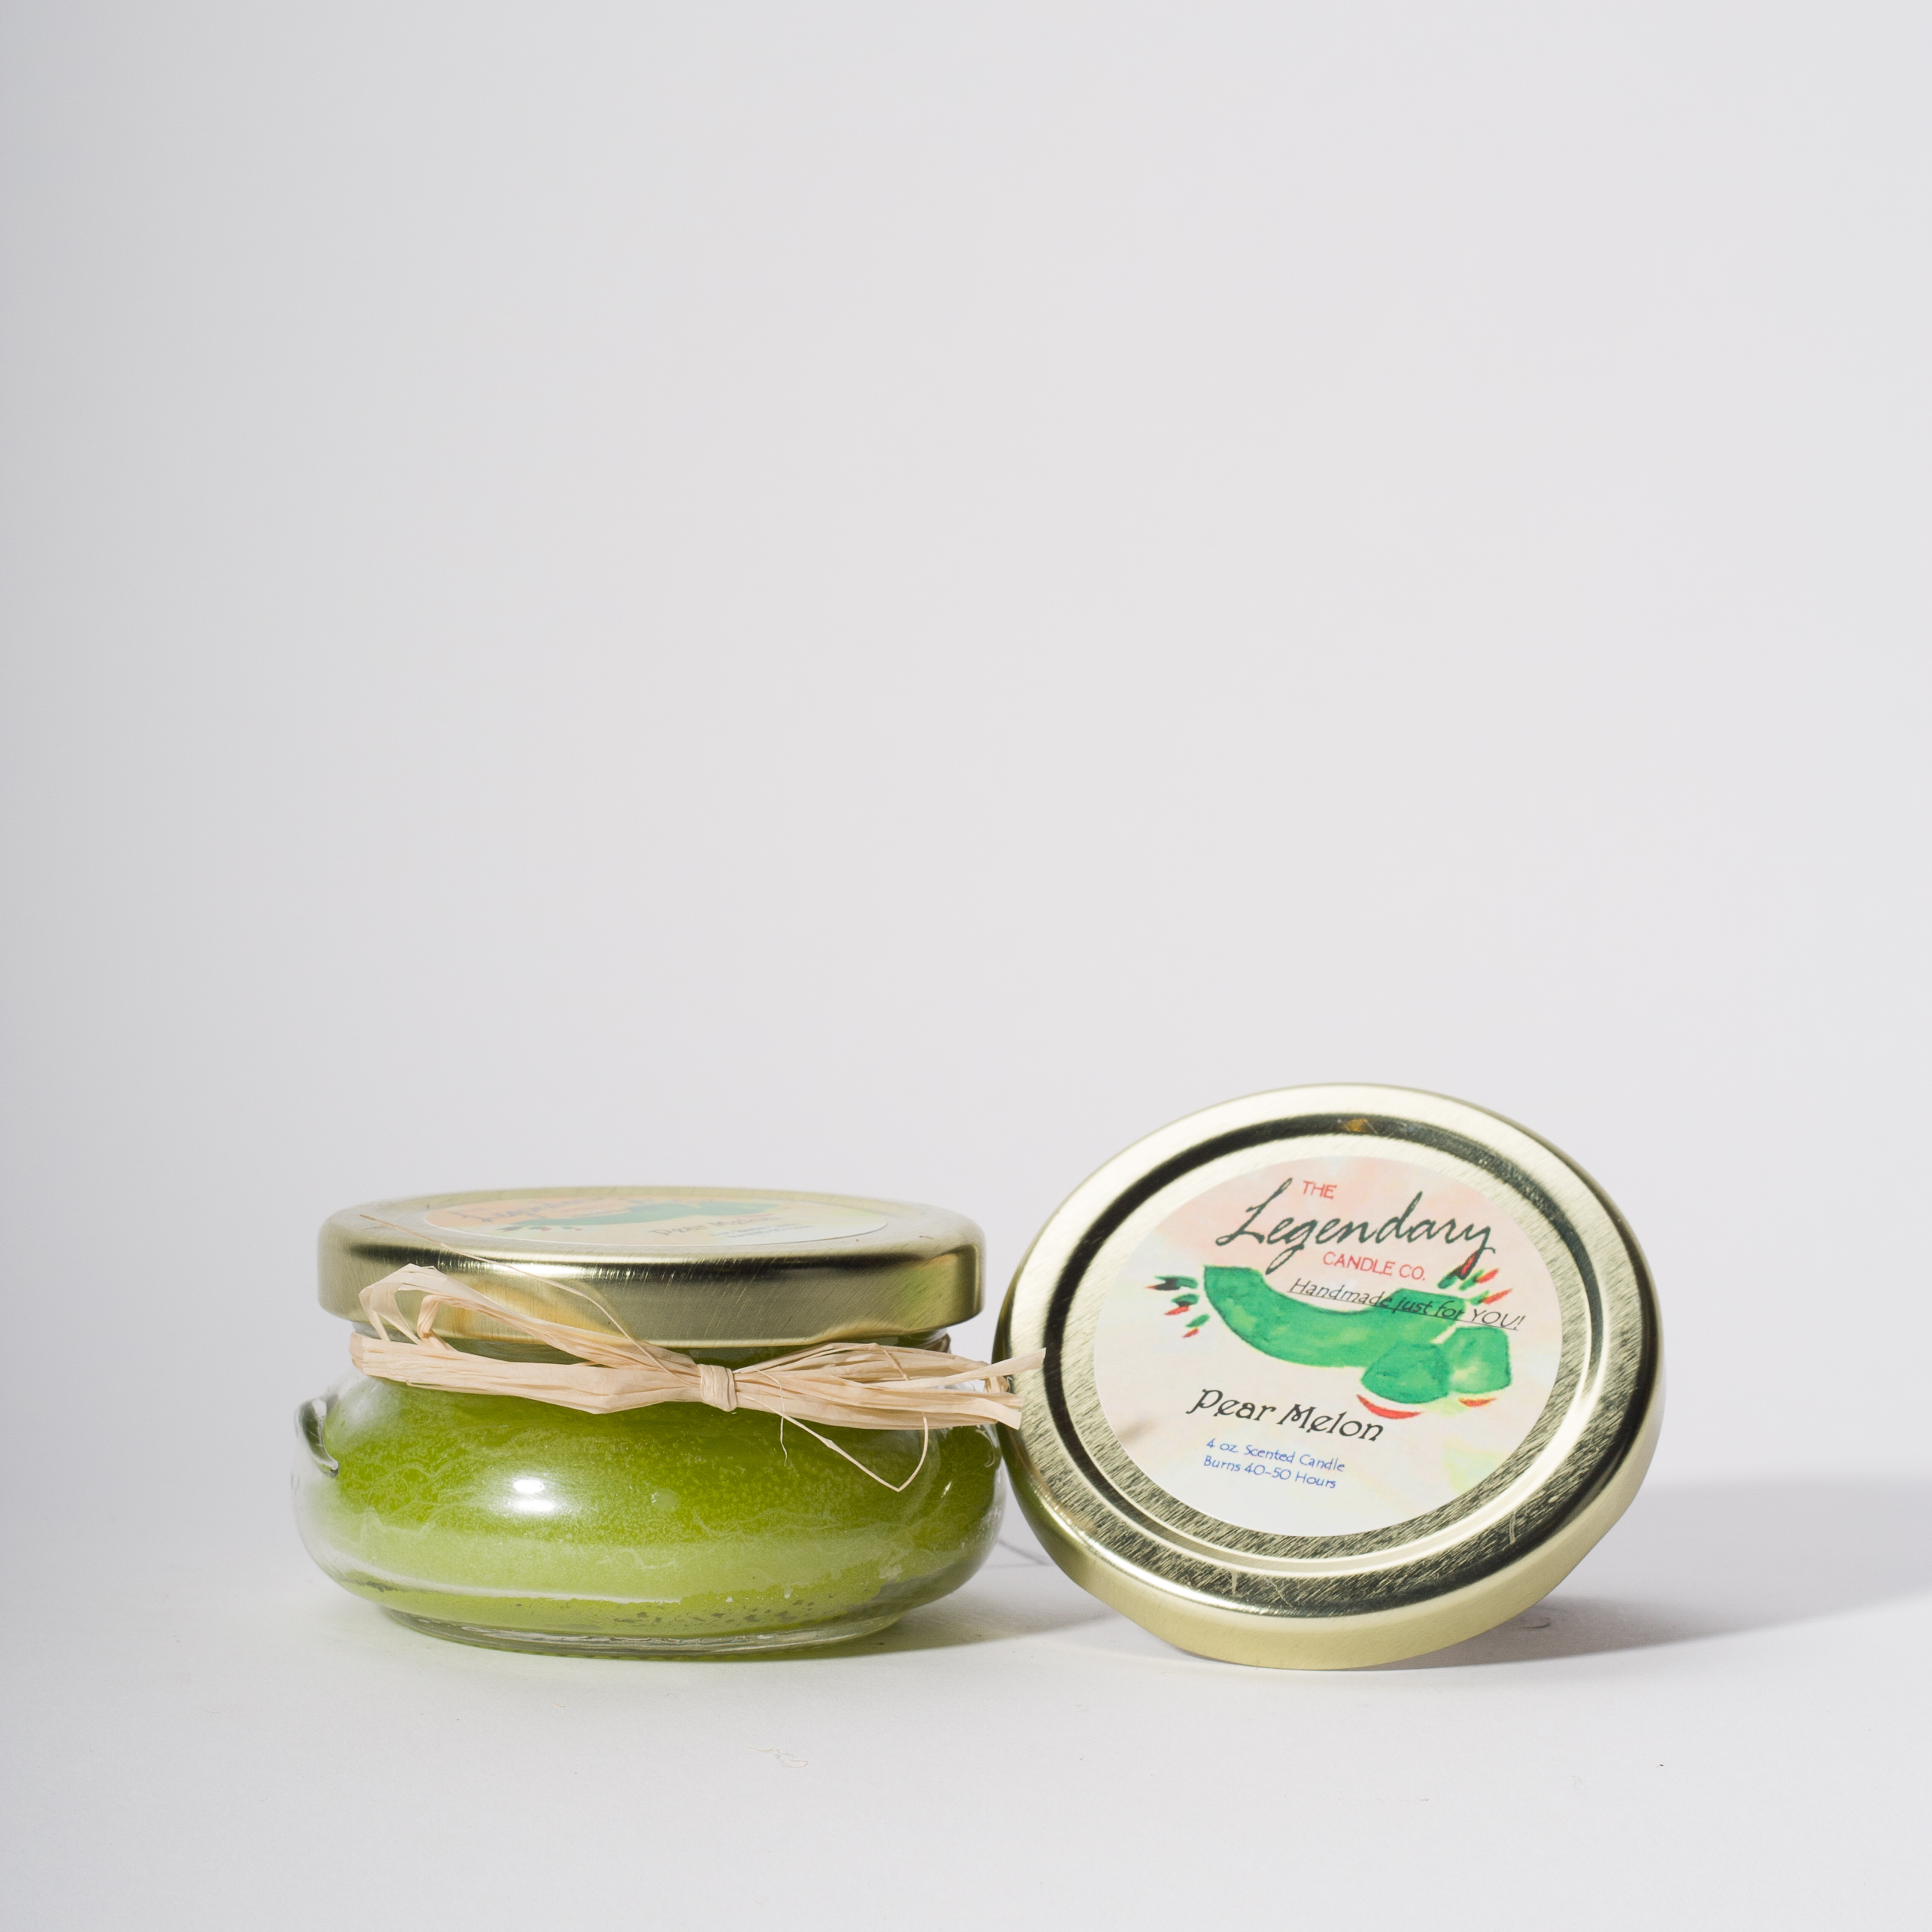 4 Ounce Pear Melon Scented Tureen Jar Candle